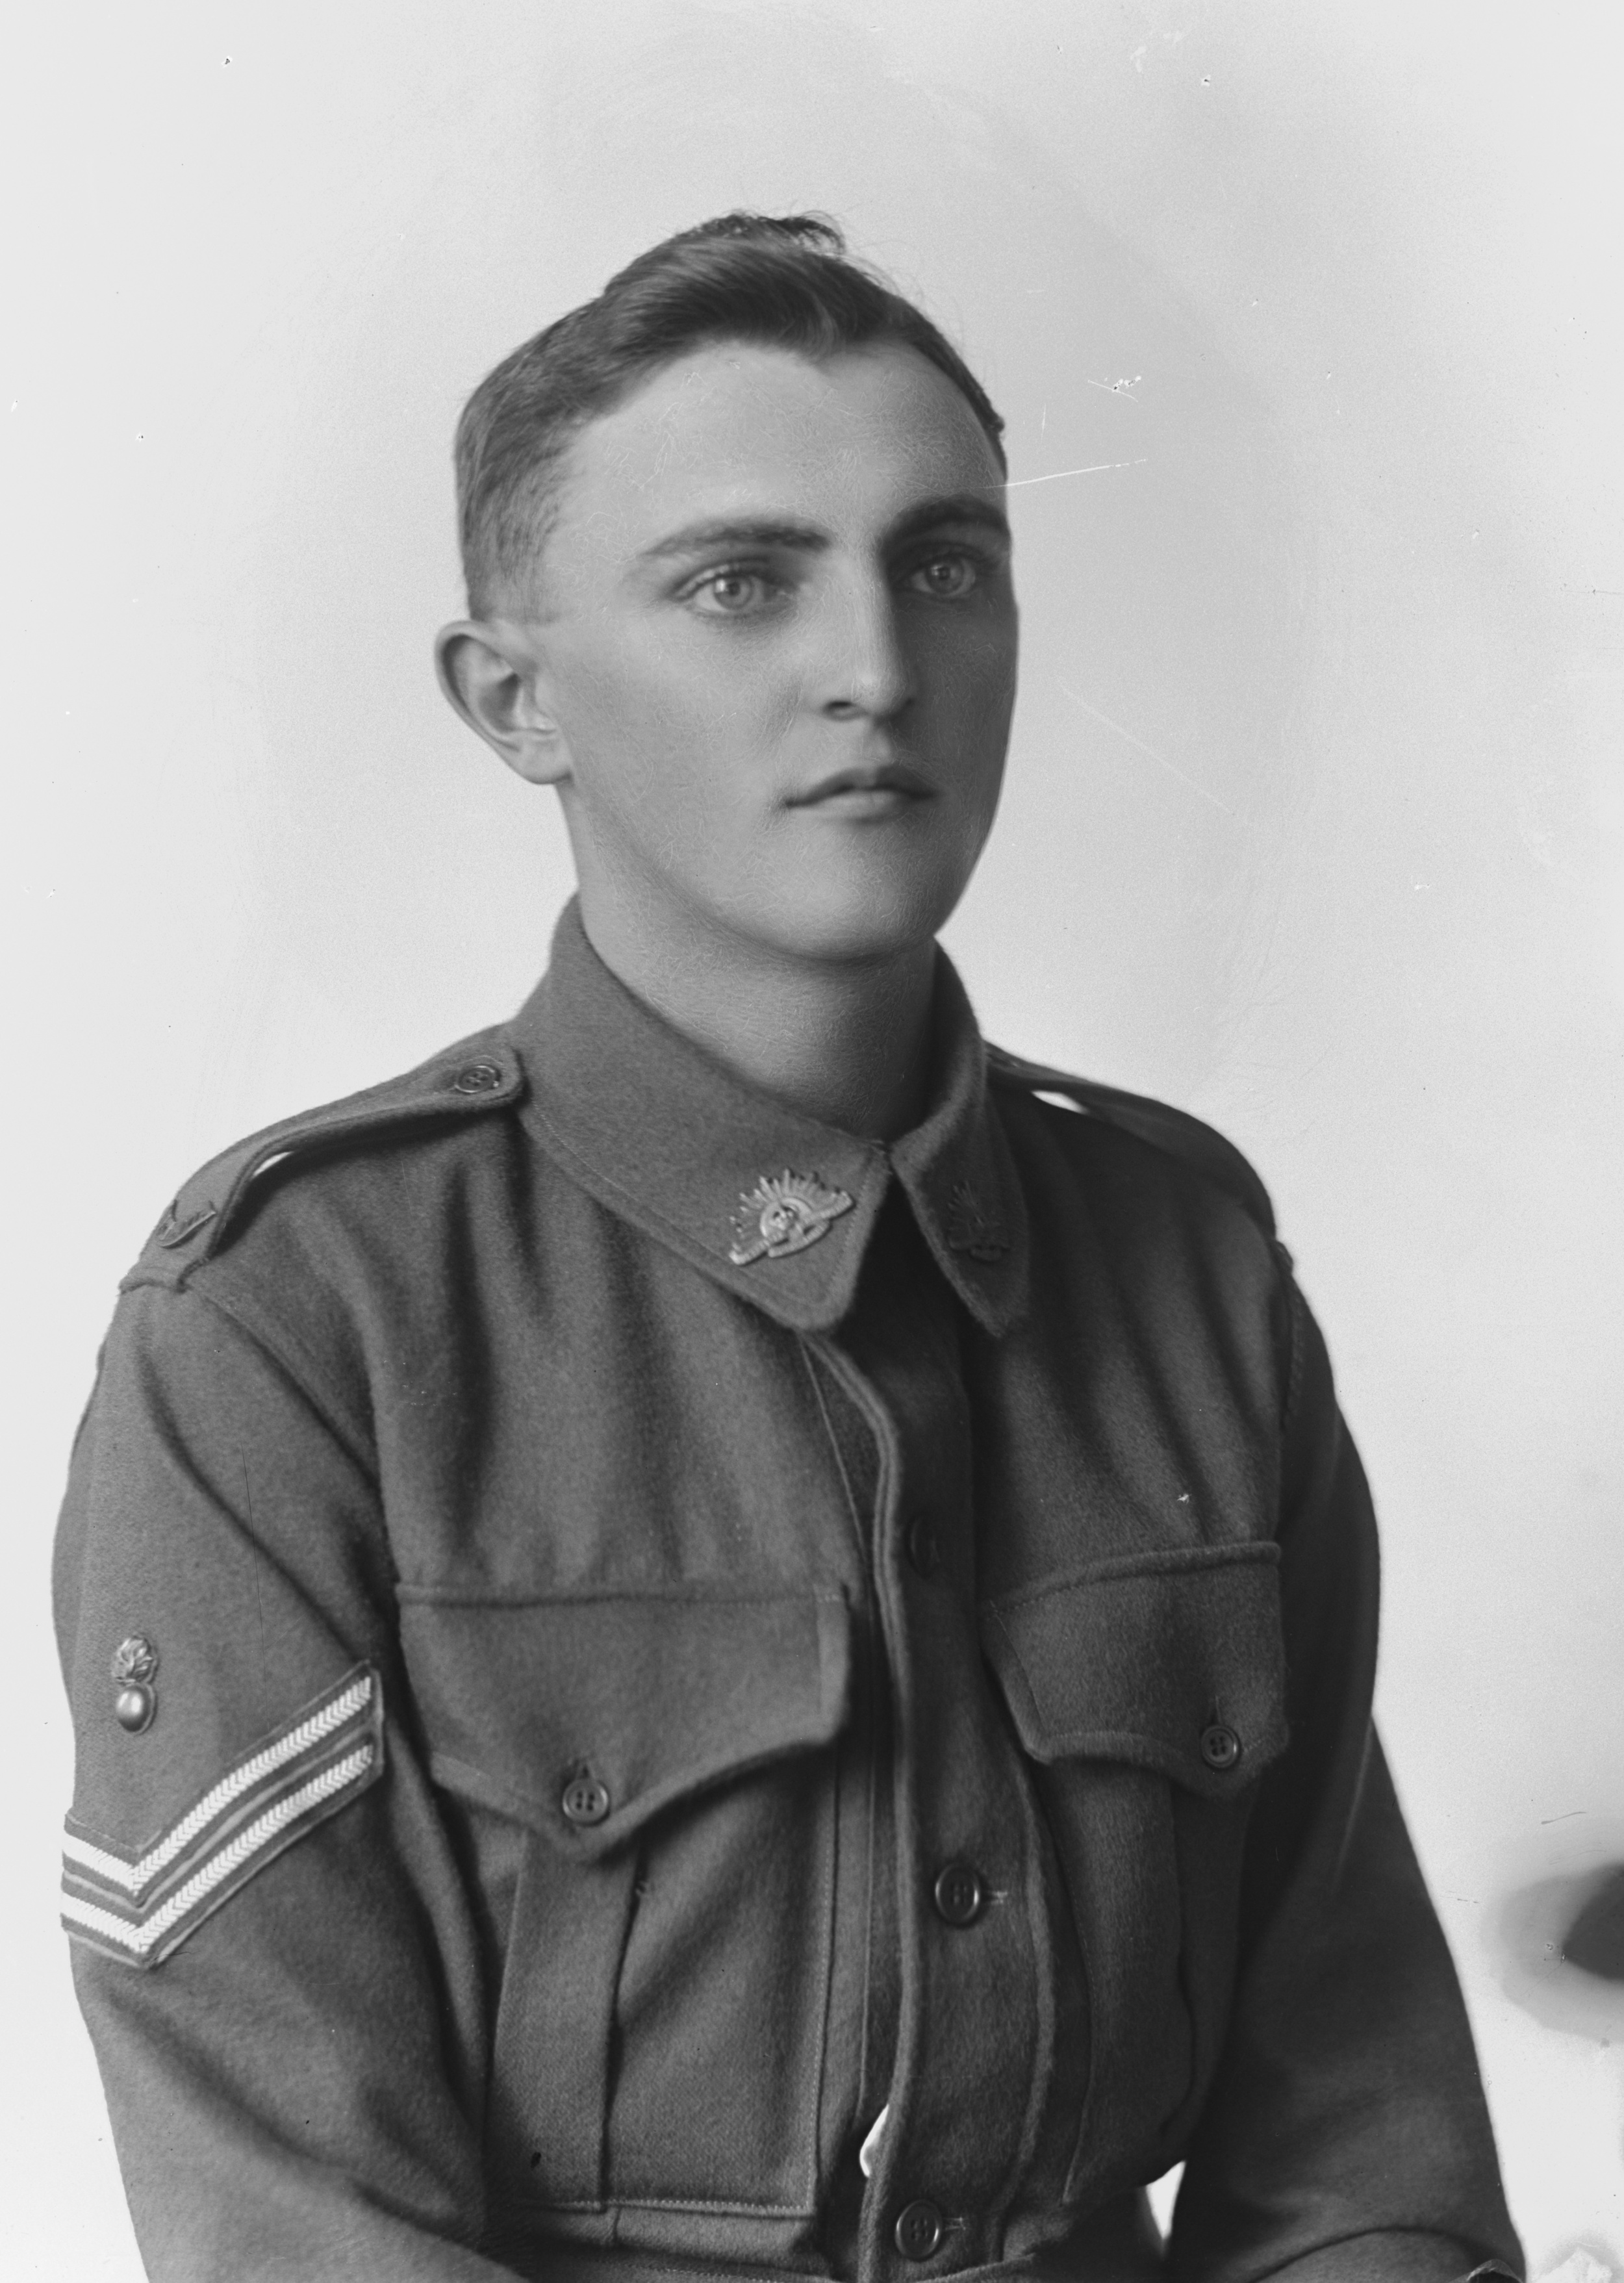 Photographed at the Dease Studio, 117 Barrack Street Perth WA Image courtesy of the State Library of Western Australia: 108419PD